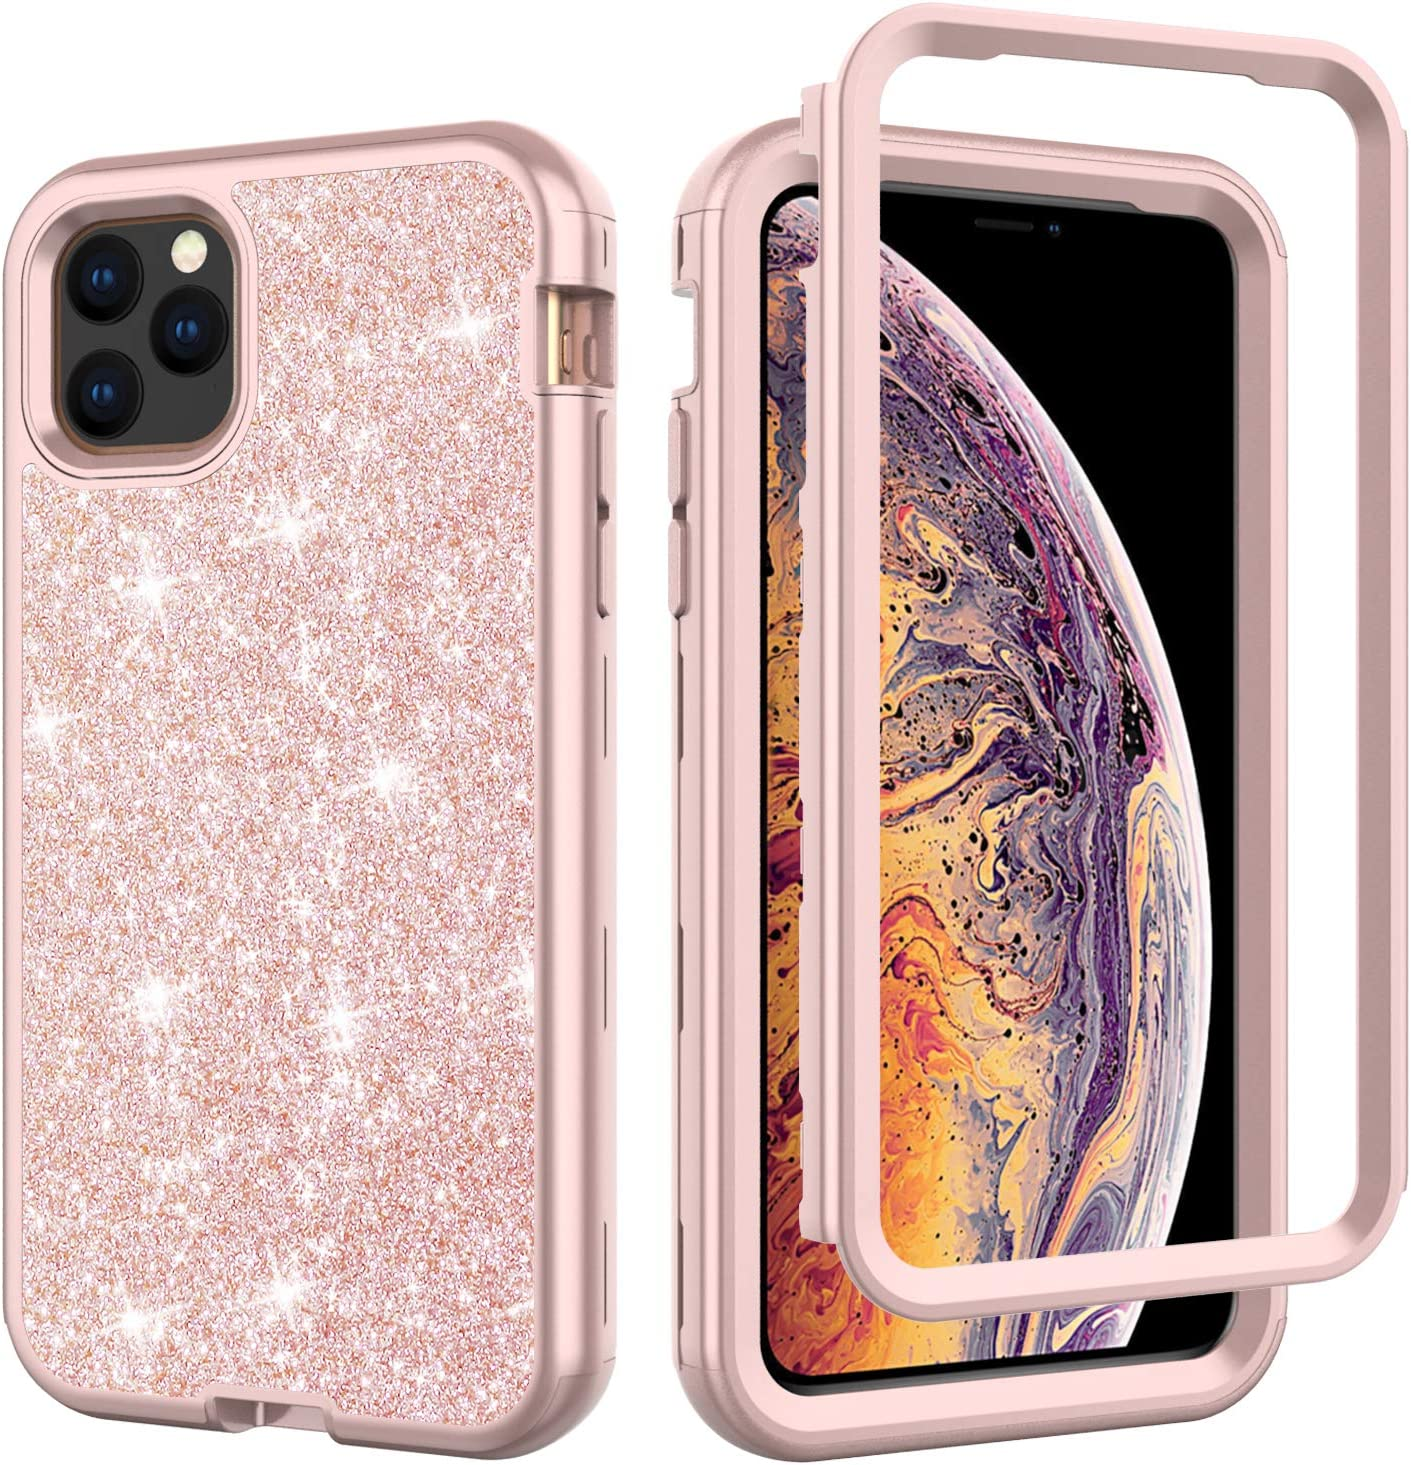 YMHML iPhone 11 Pro Case iPhone XI Pro Cover Bling Glitter Full-Body Protection Hybrid Protective Hard Shell Silicone Rubber with Front Frame for iPhone 11 Pro iPhone XI Pro (Rose Gold)